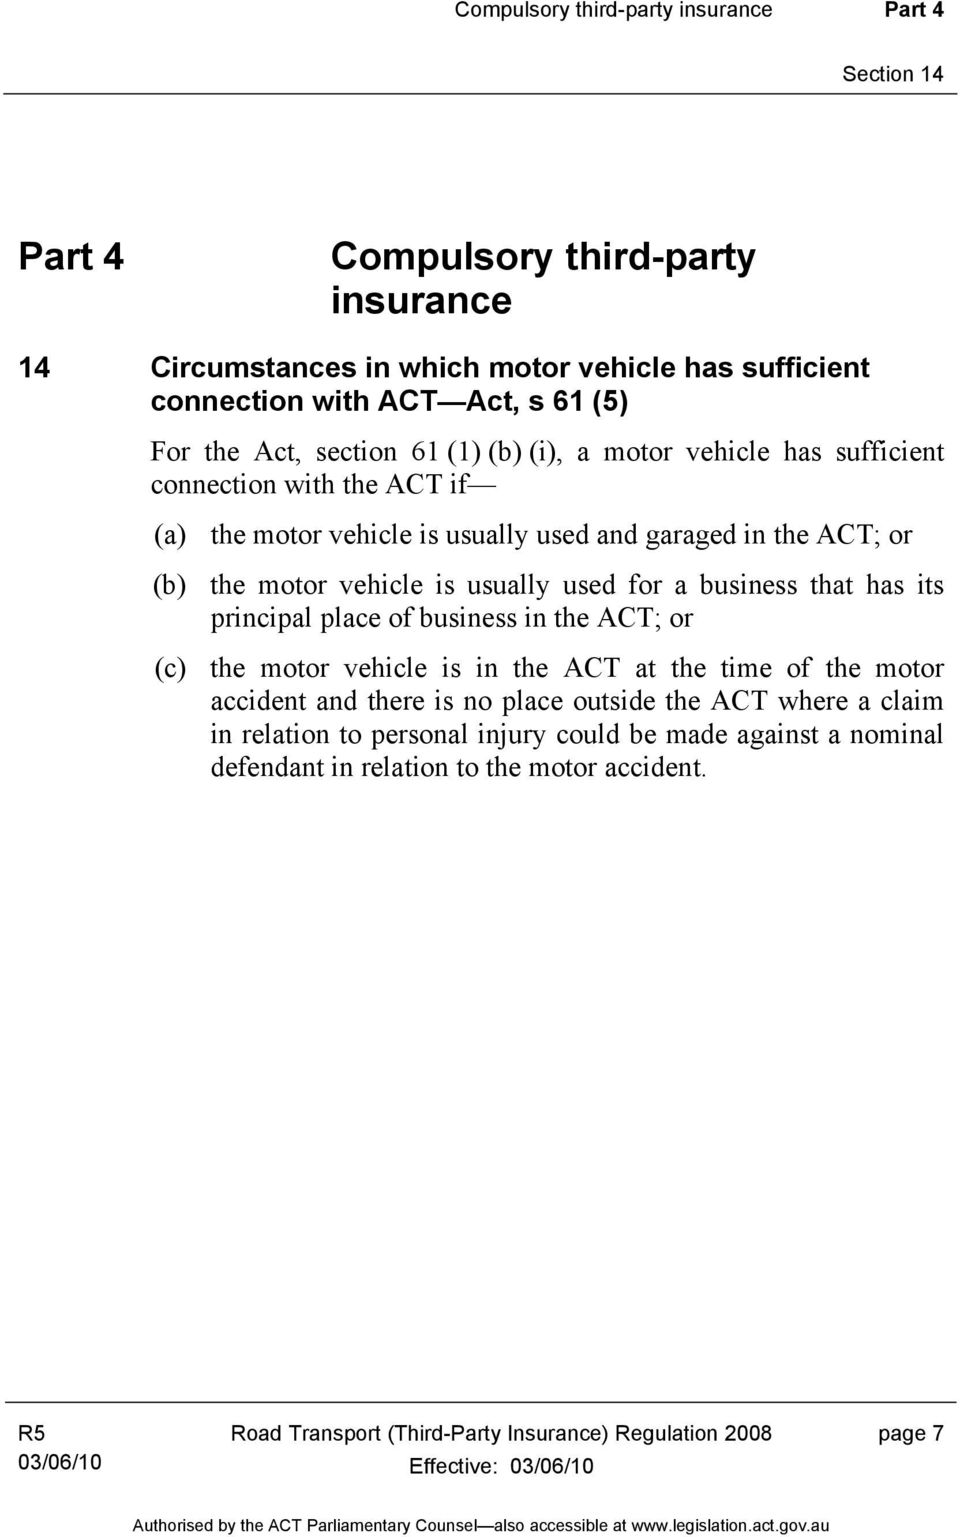 used for a business that has its principal place of business in the ACT; or (c) the motor vehicle is in the ACT at the time of the motor accident and there is no place outside the ACT